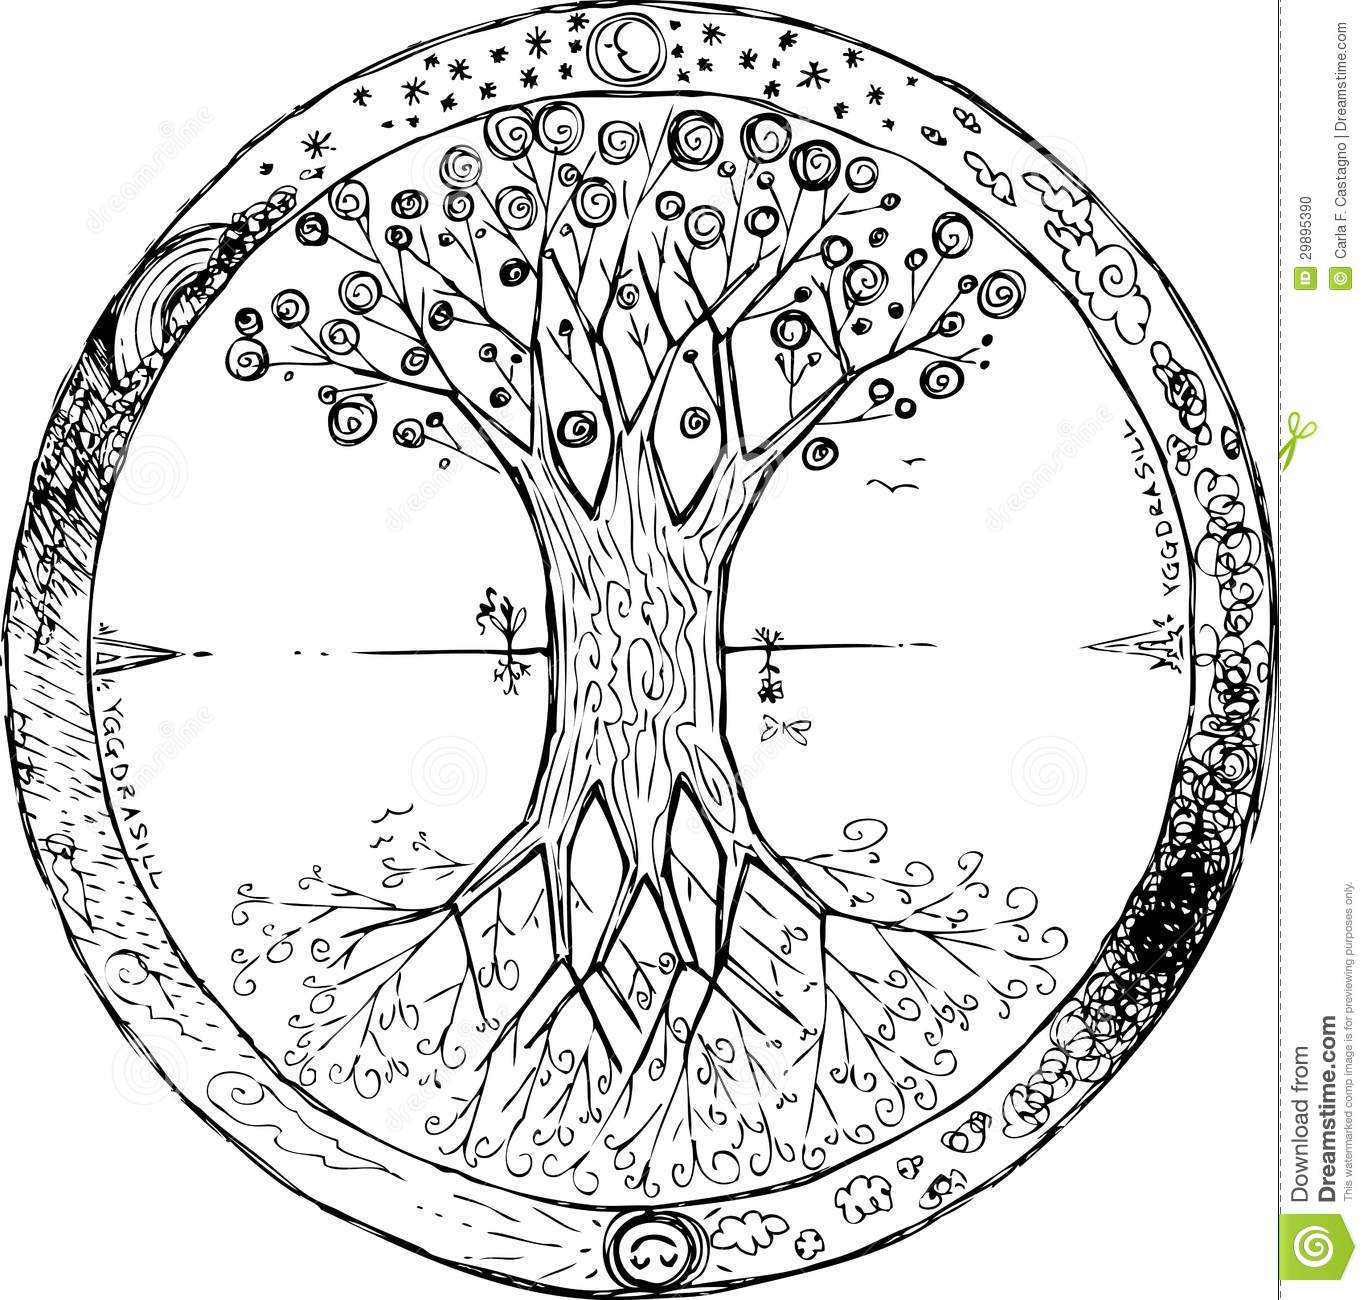 Coloring Yggdrasil: The Celtic Tree Of Life Vector Stock